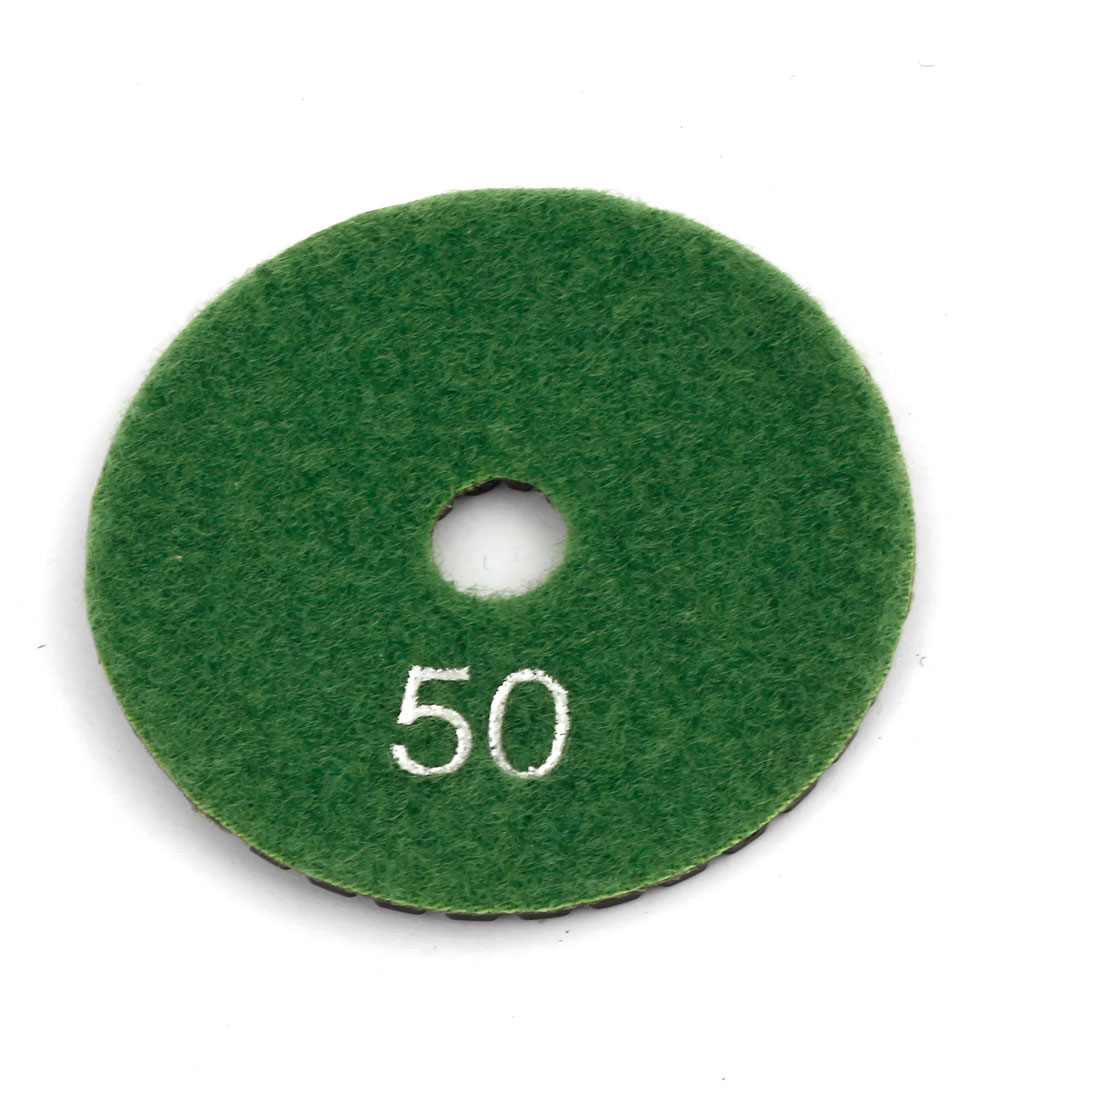 "Black Green Grit 50 3"" Dia Tile Stone Polisher Grinder Diamond Polishing Pad"